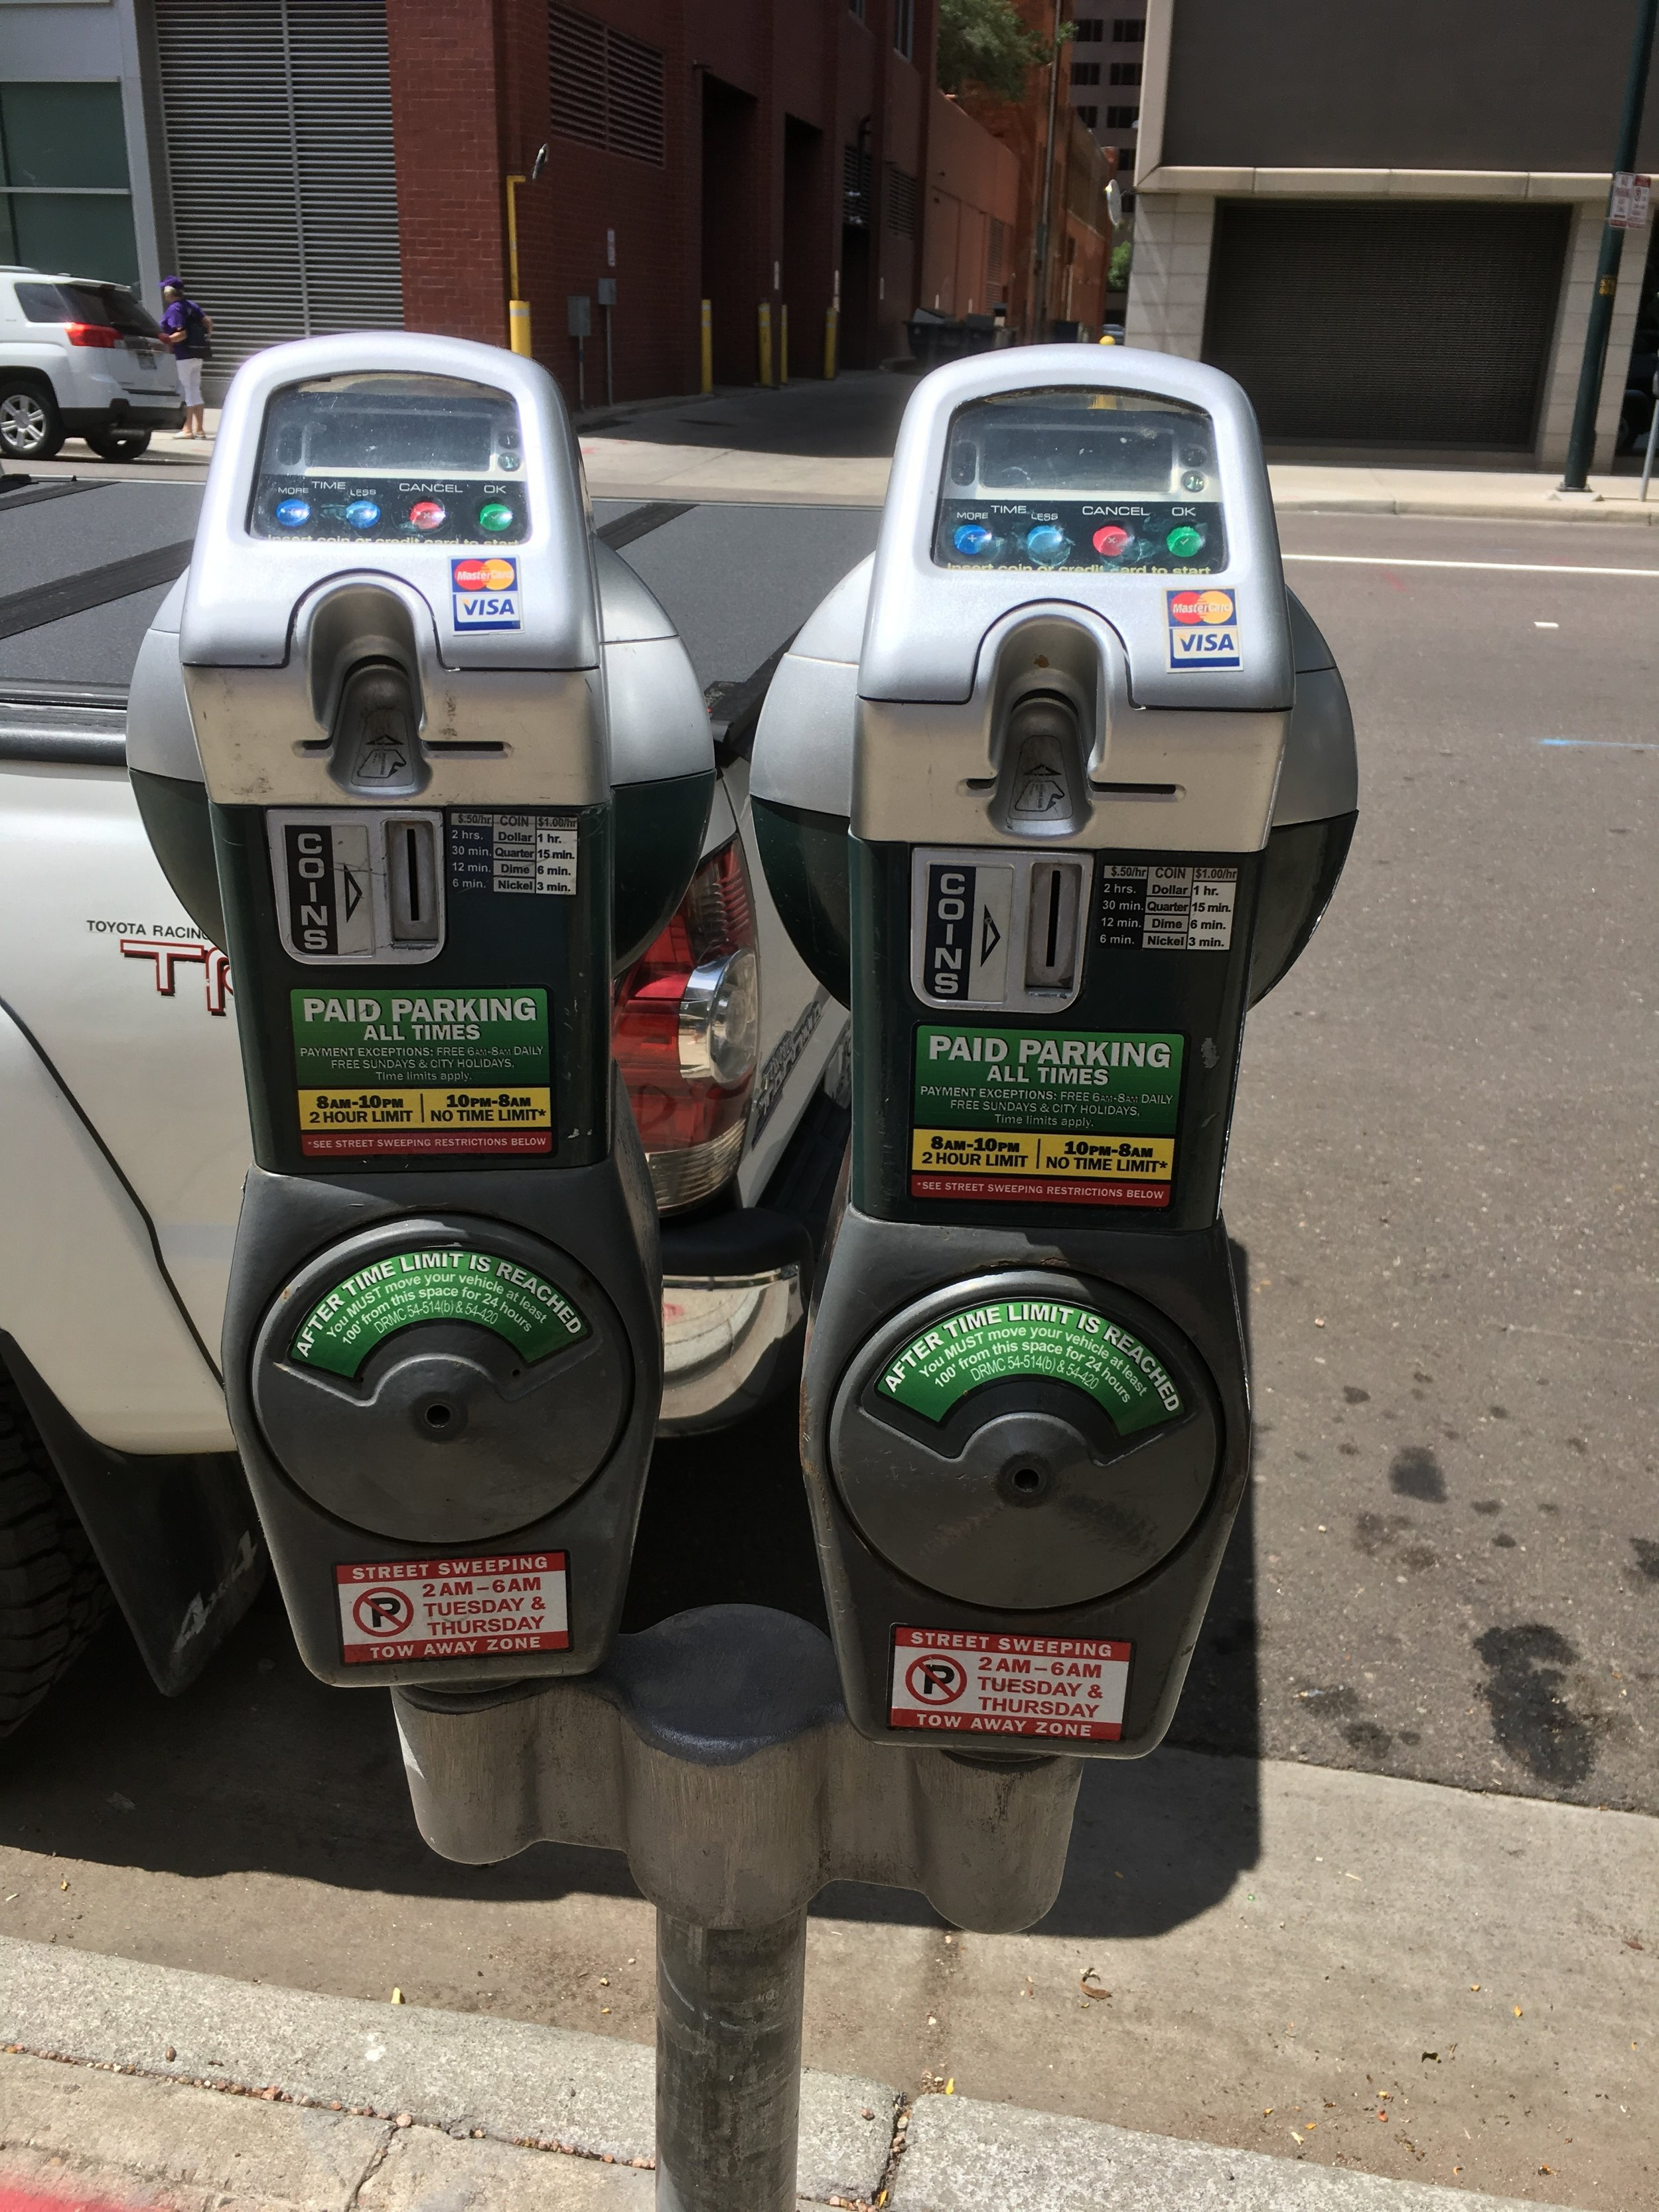 19th Street parking meters, looks like they take credit card